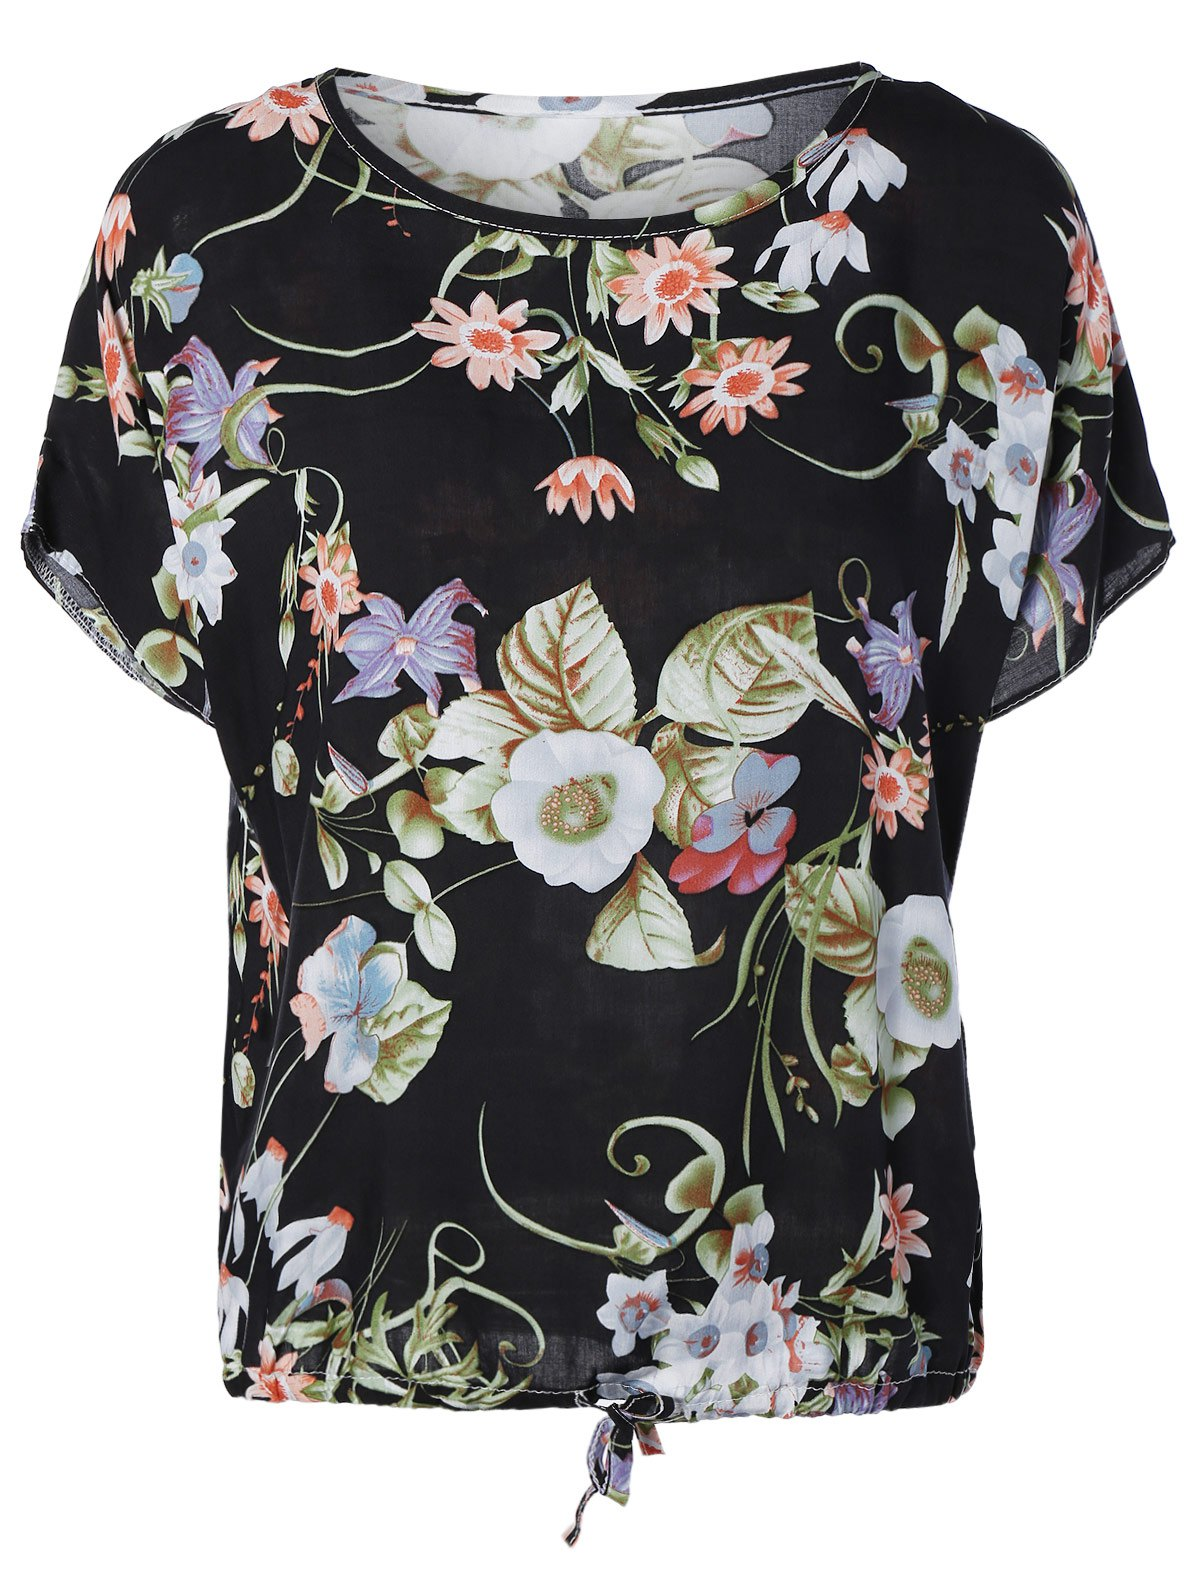 Flower Blossom Loose-Fitting Blouse - BLACK ONE SIZE